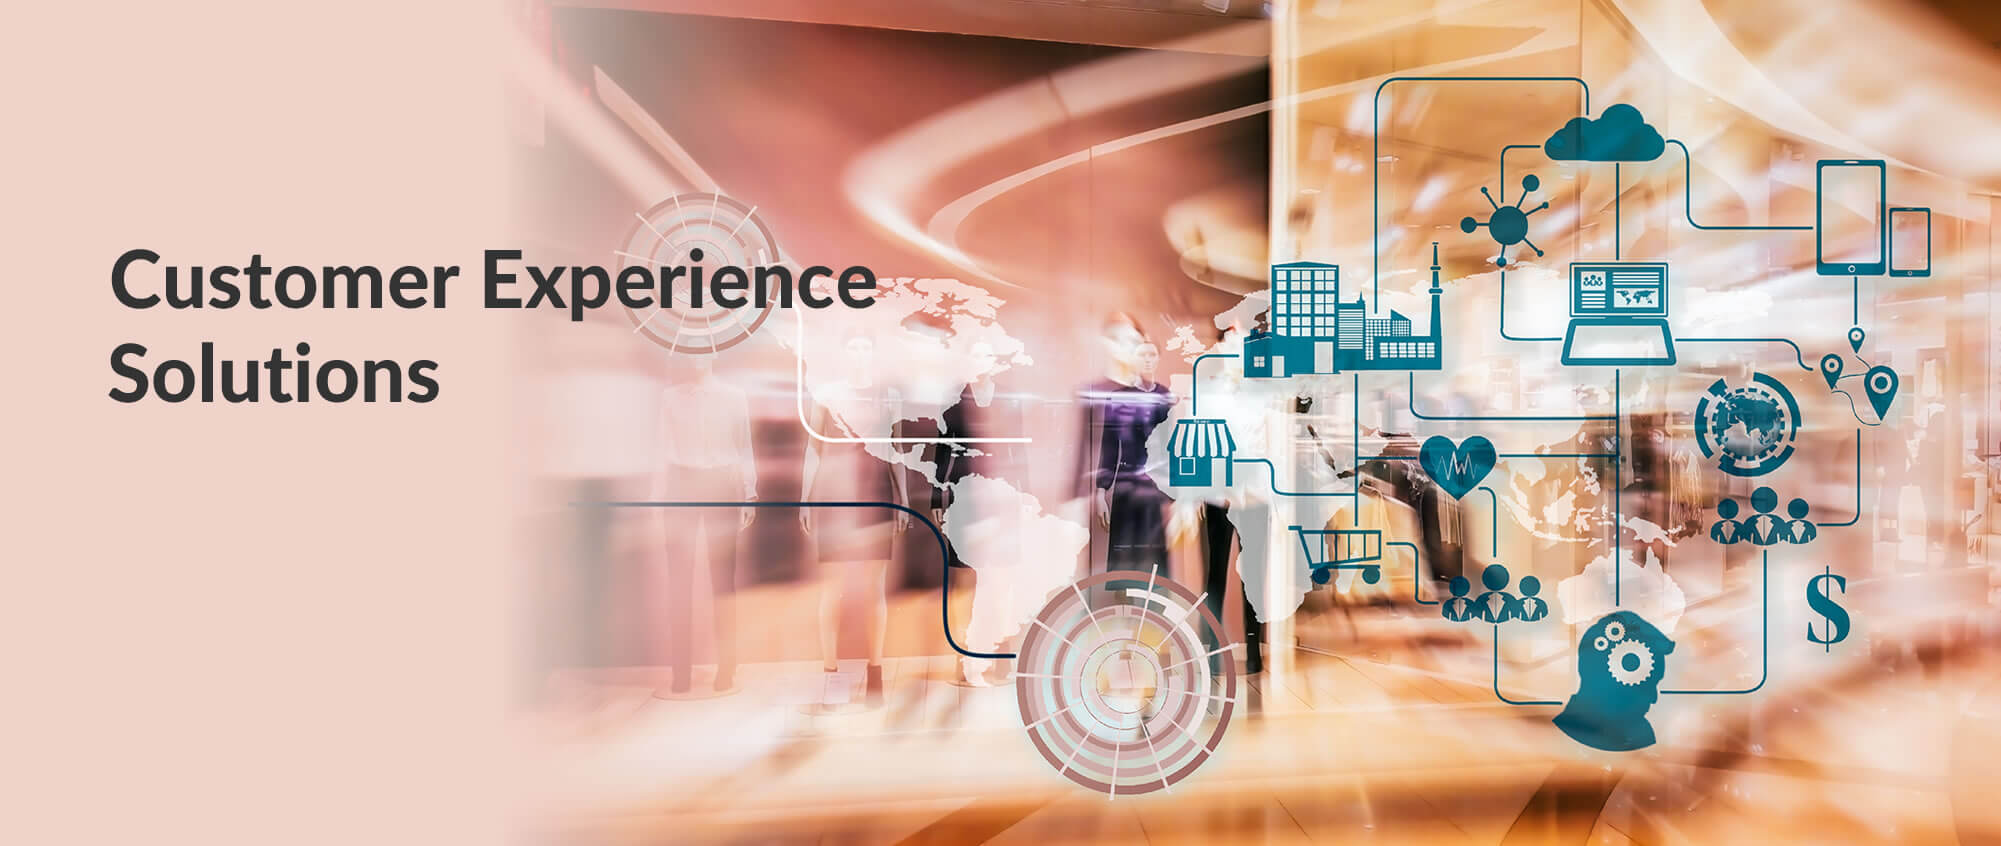 Customer Experience Solution